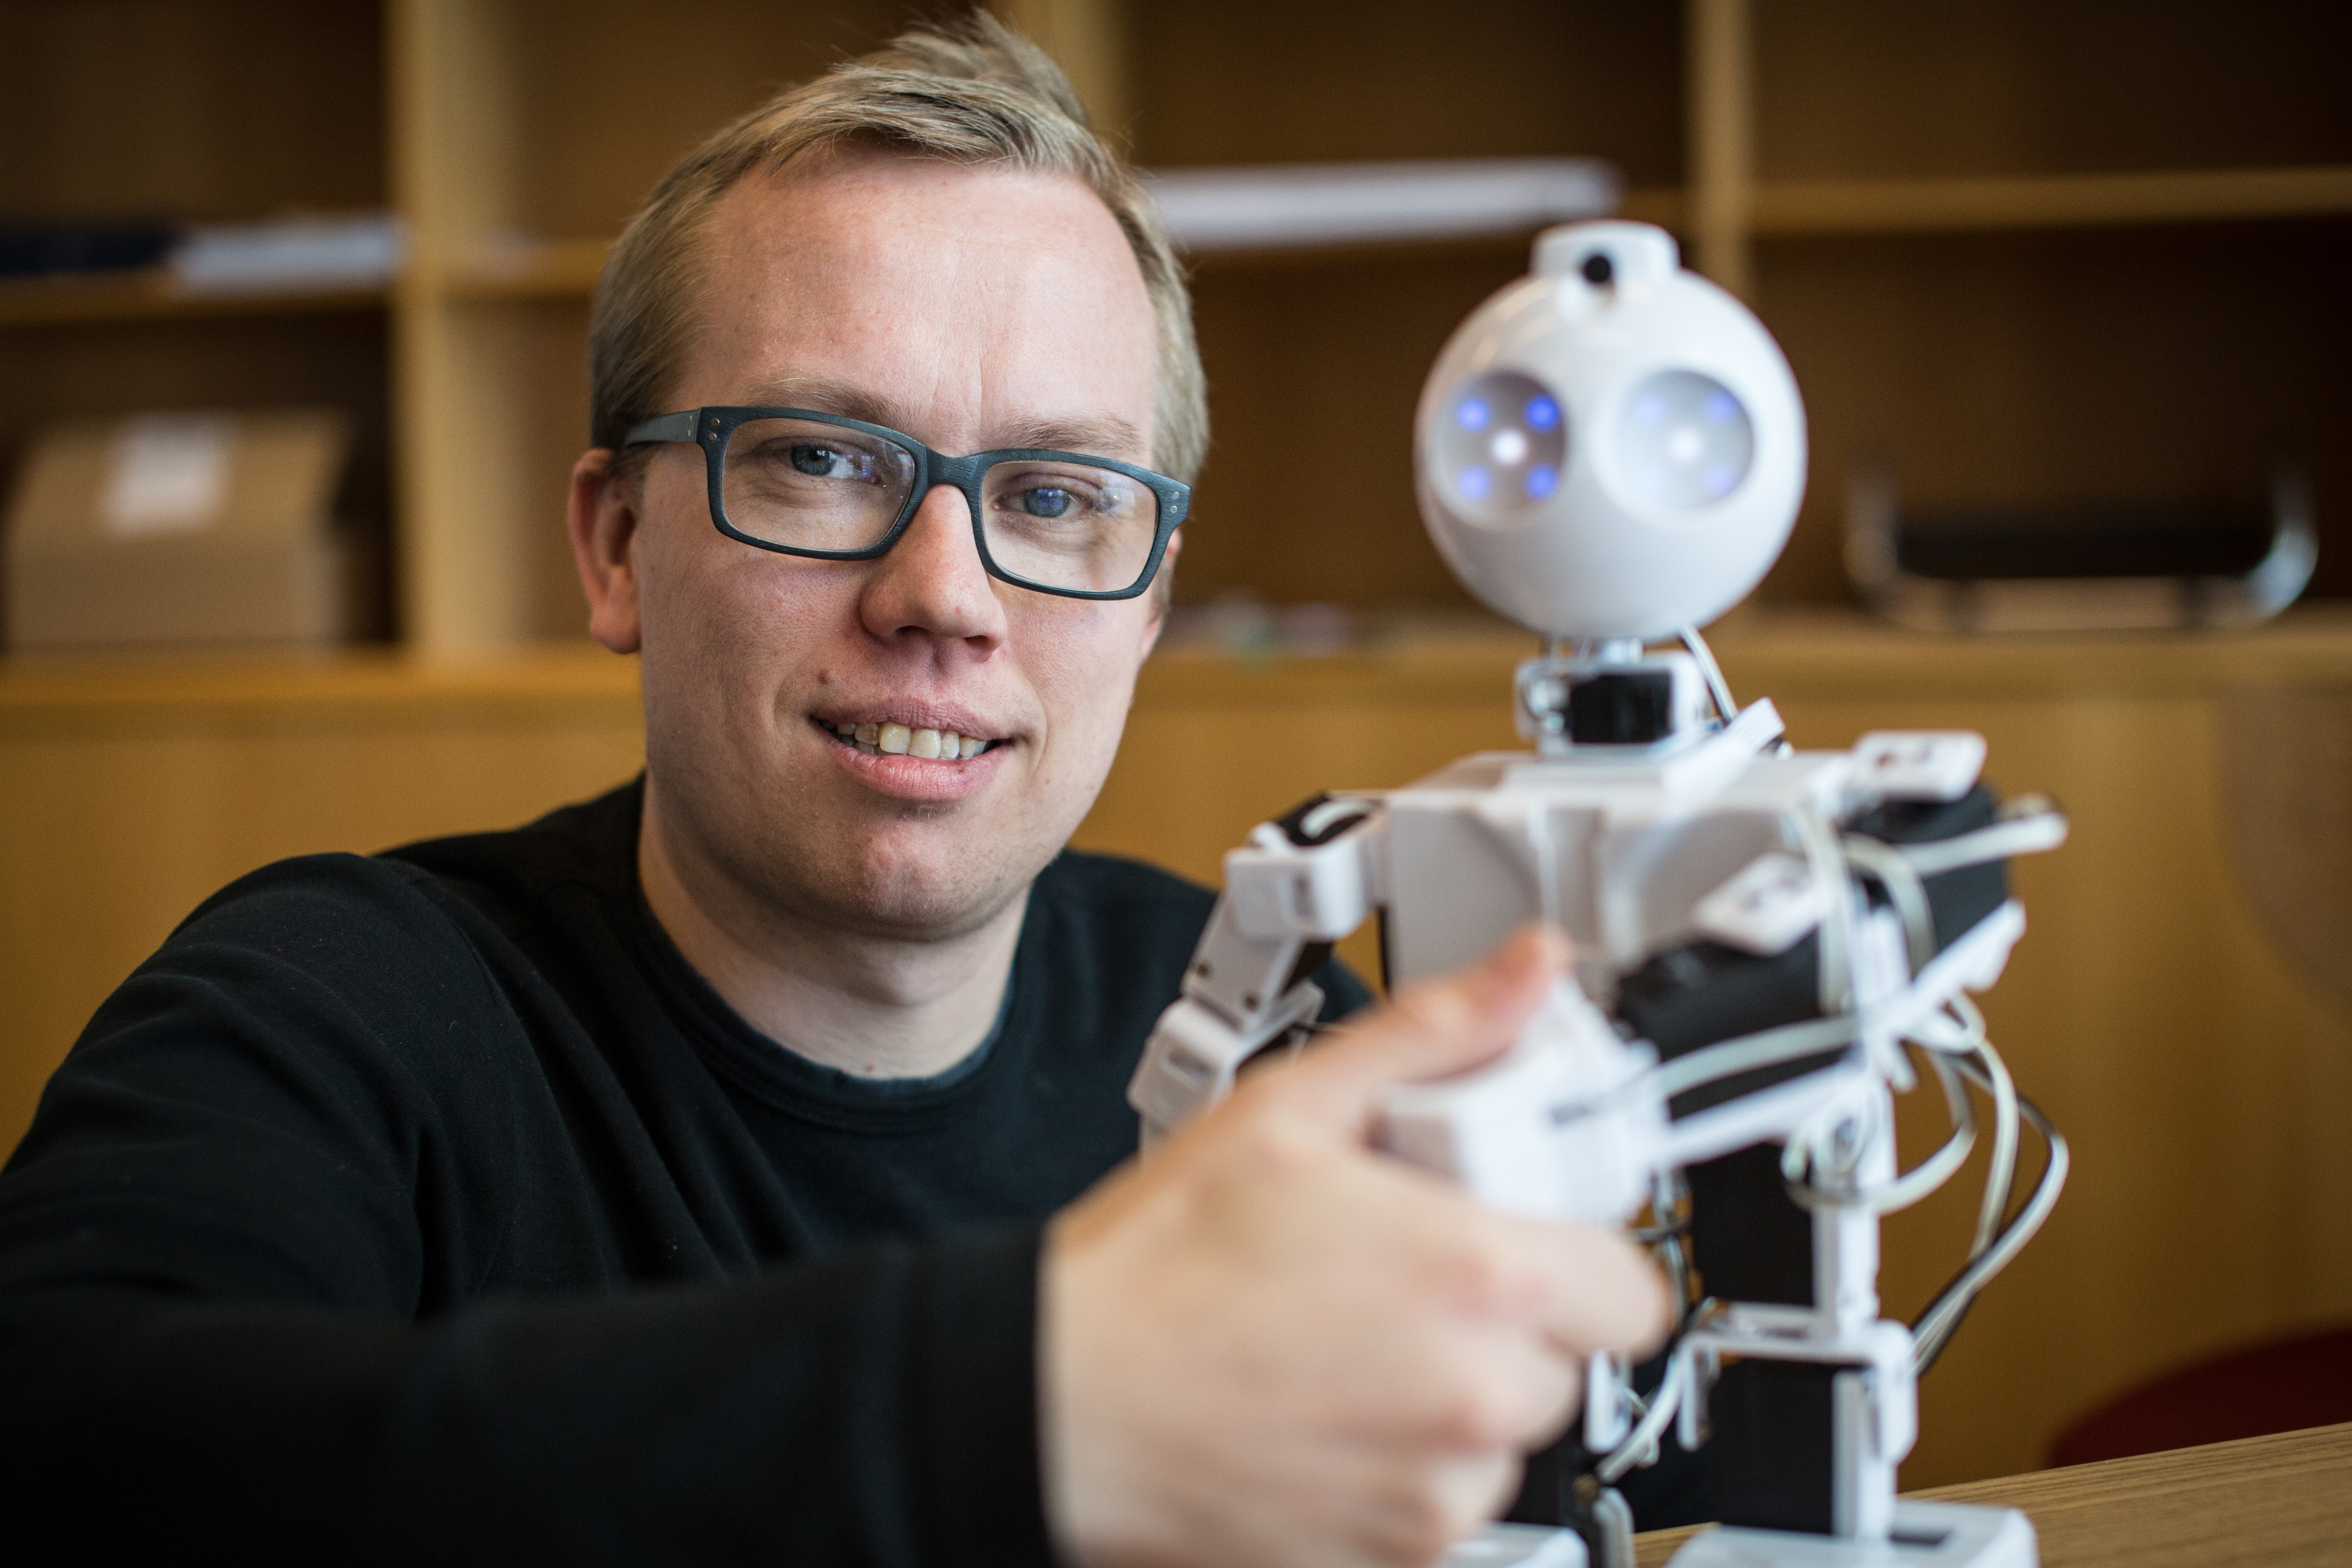 Lars Christian Jensen and the EZ-Robot.